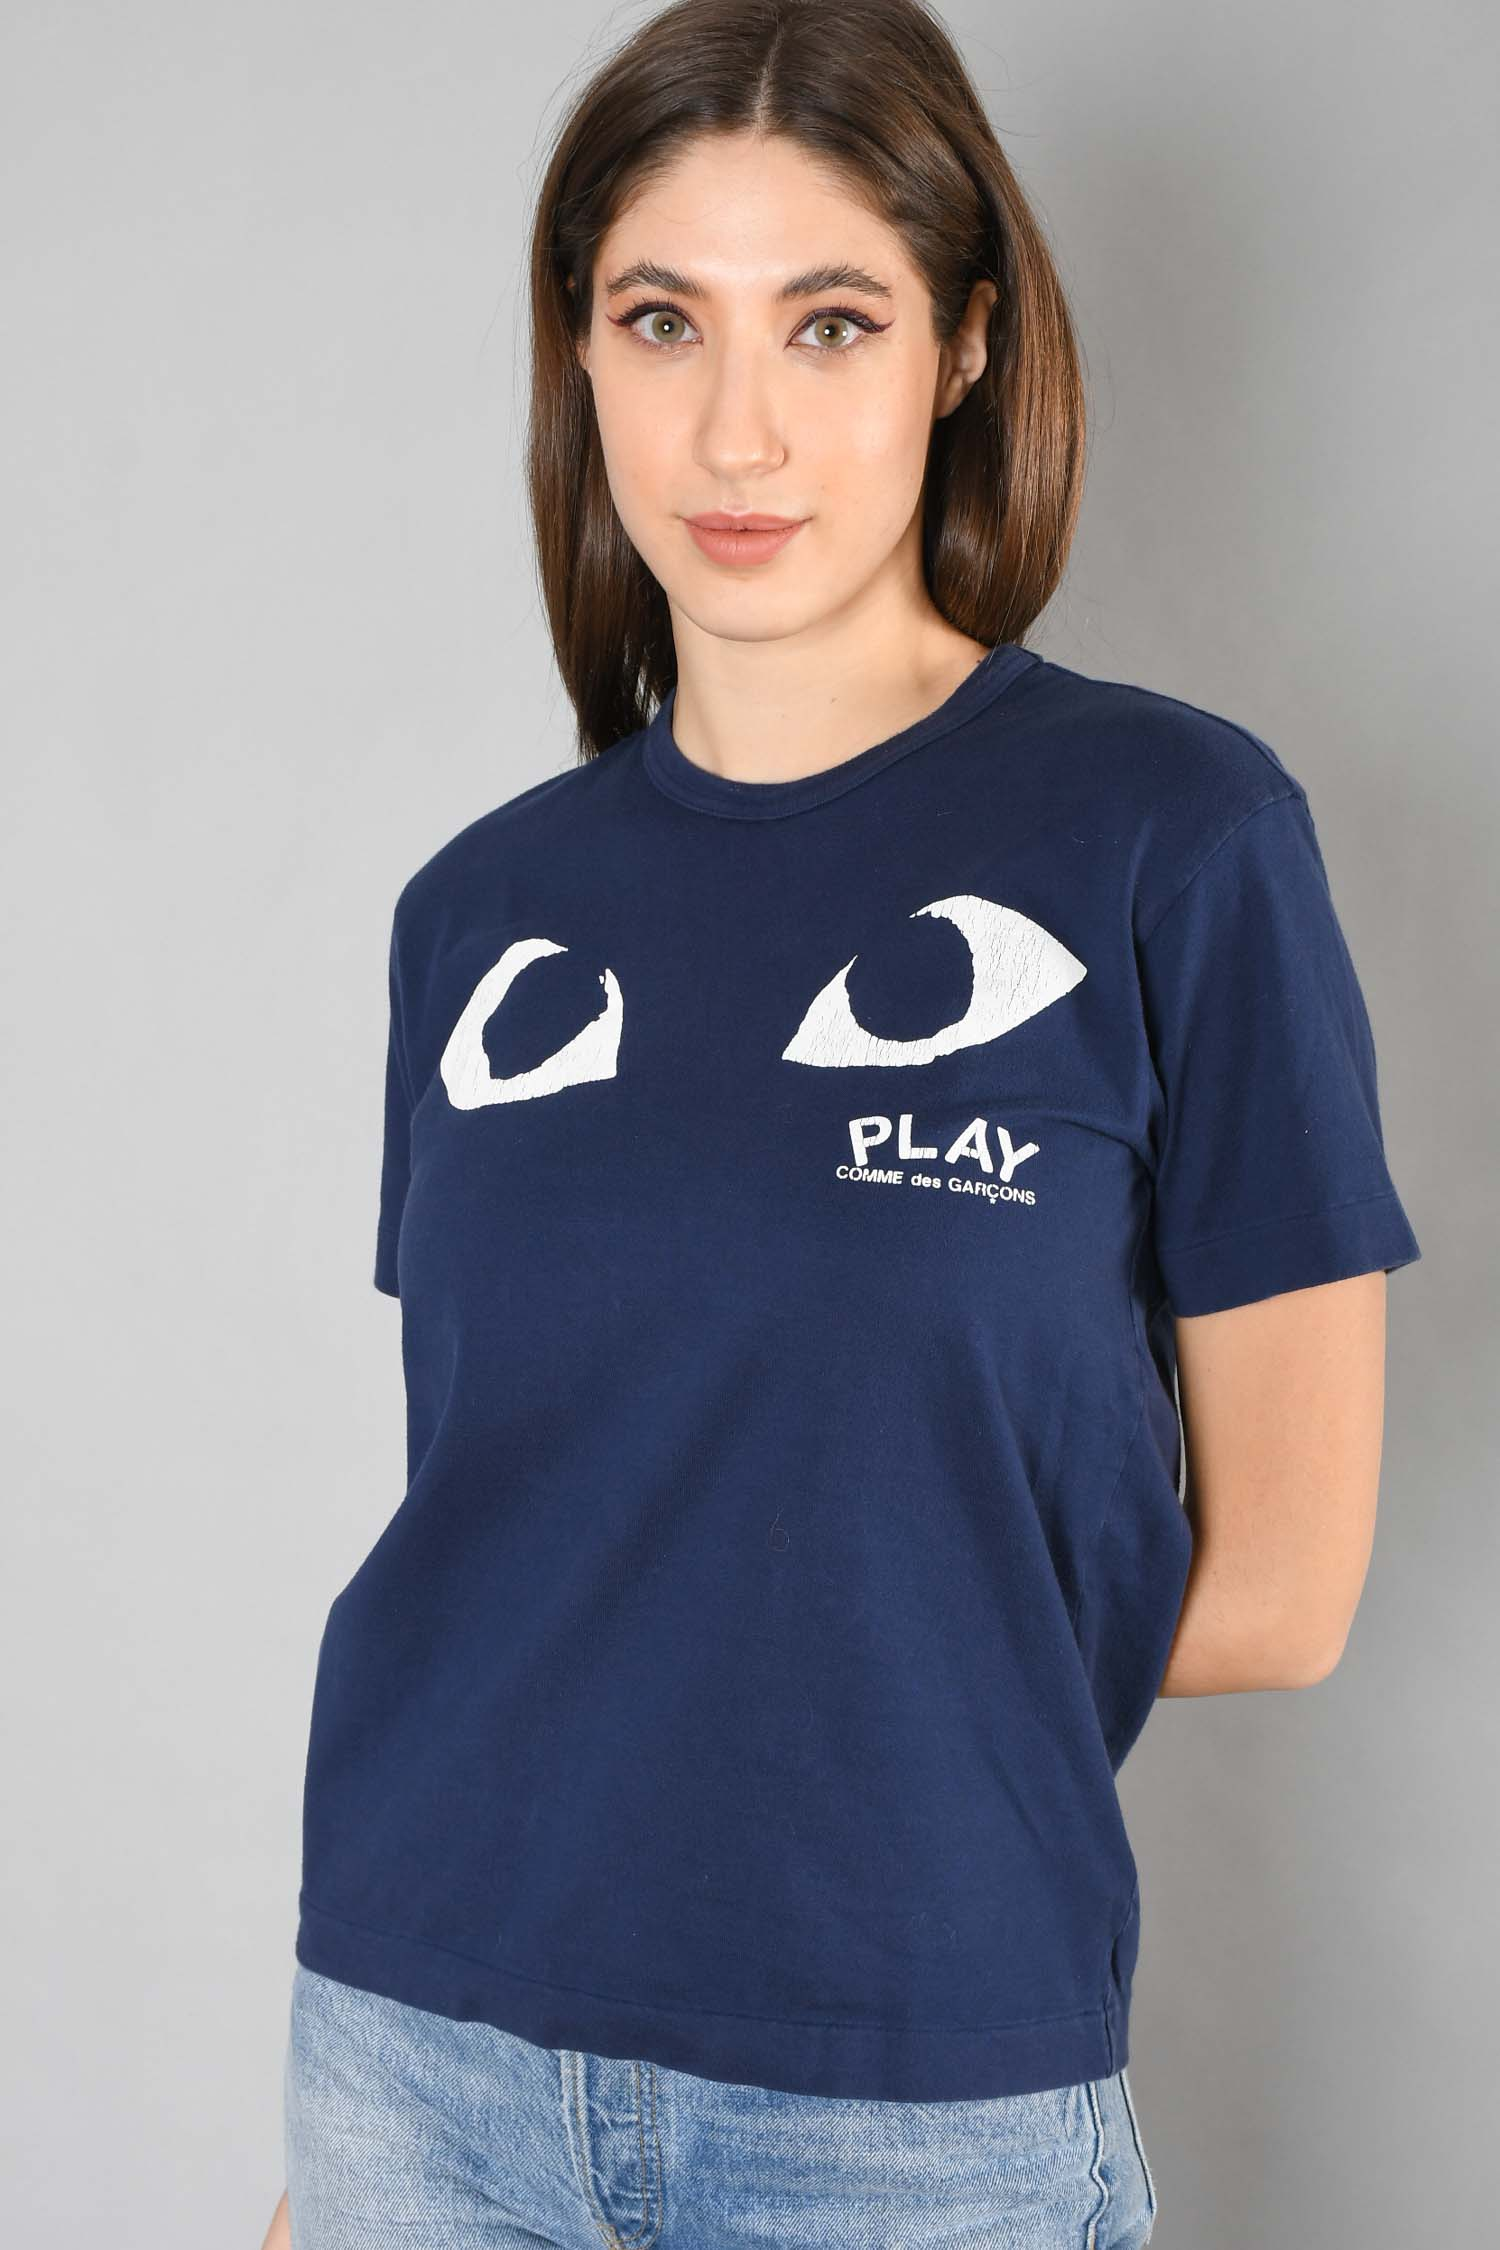 Play Comme Des Garcons Navy Eye Graphic T-Shirt Size M